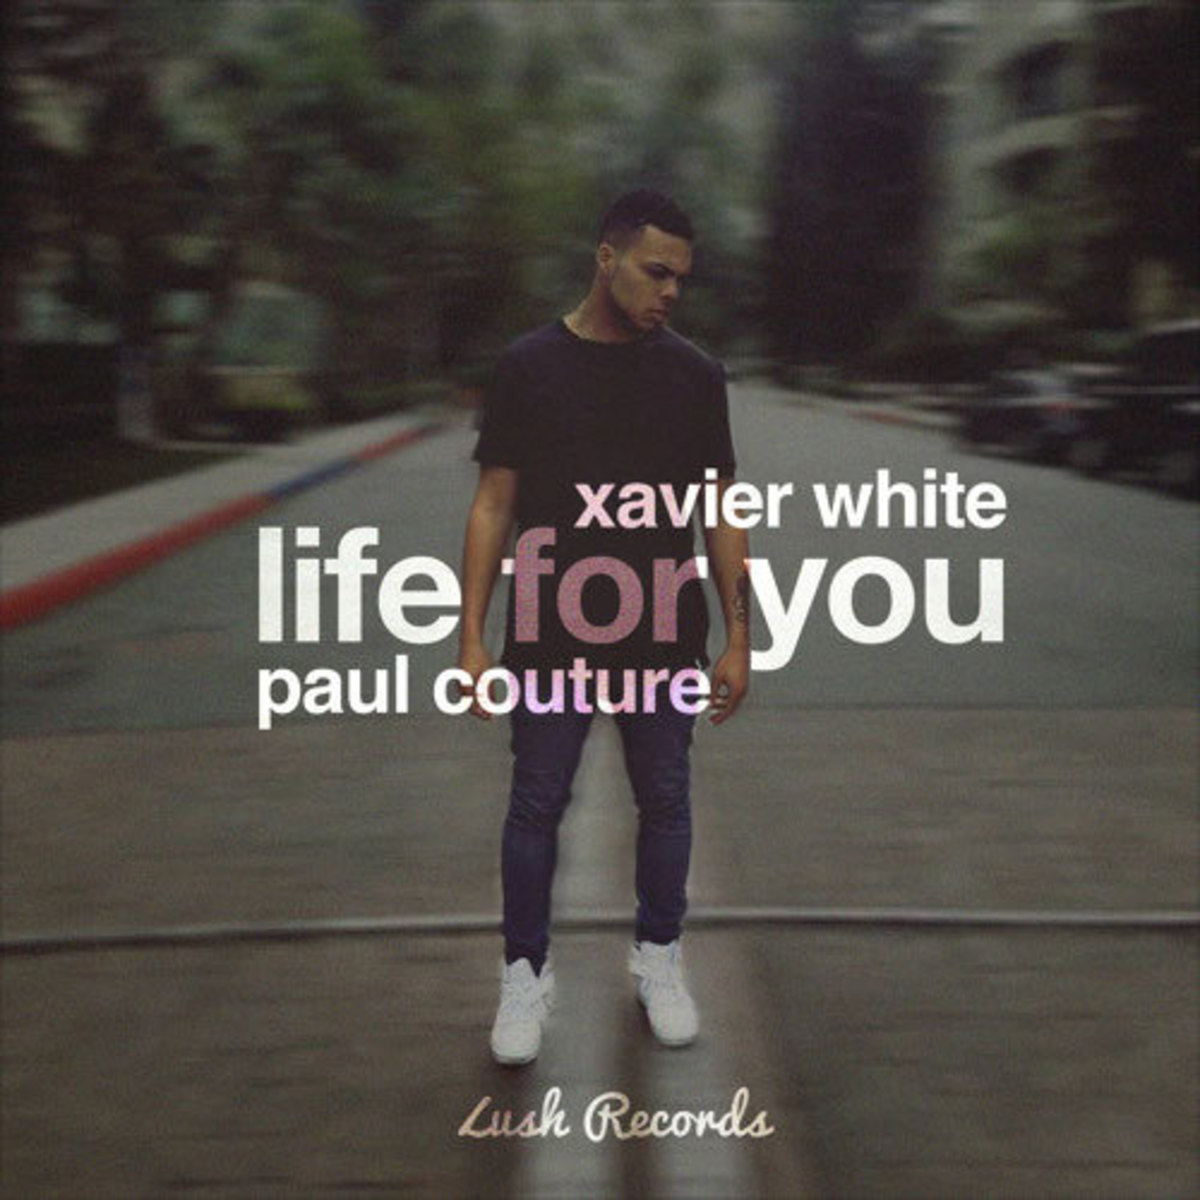 xavier-white-life-for-you.jpg